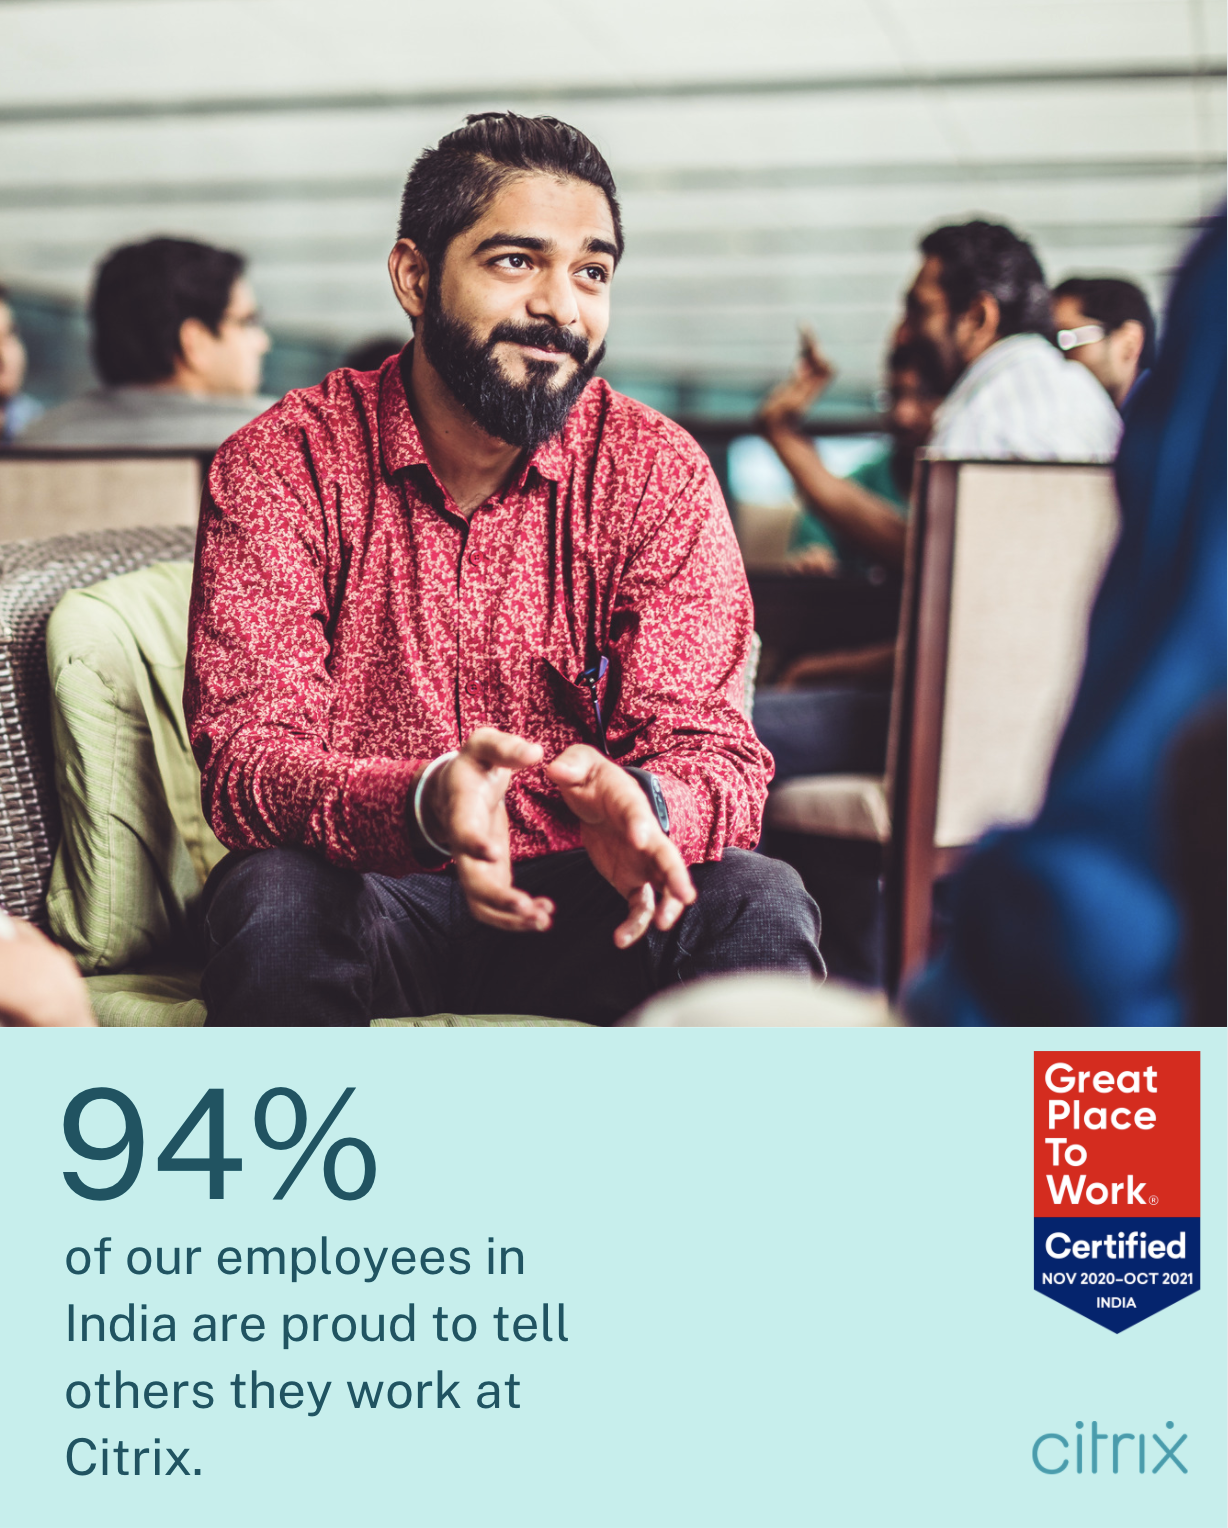 94% of our employees in India are proud to tell others they work at Citrix